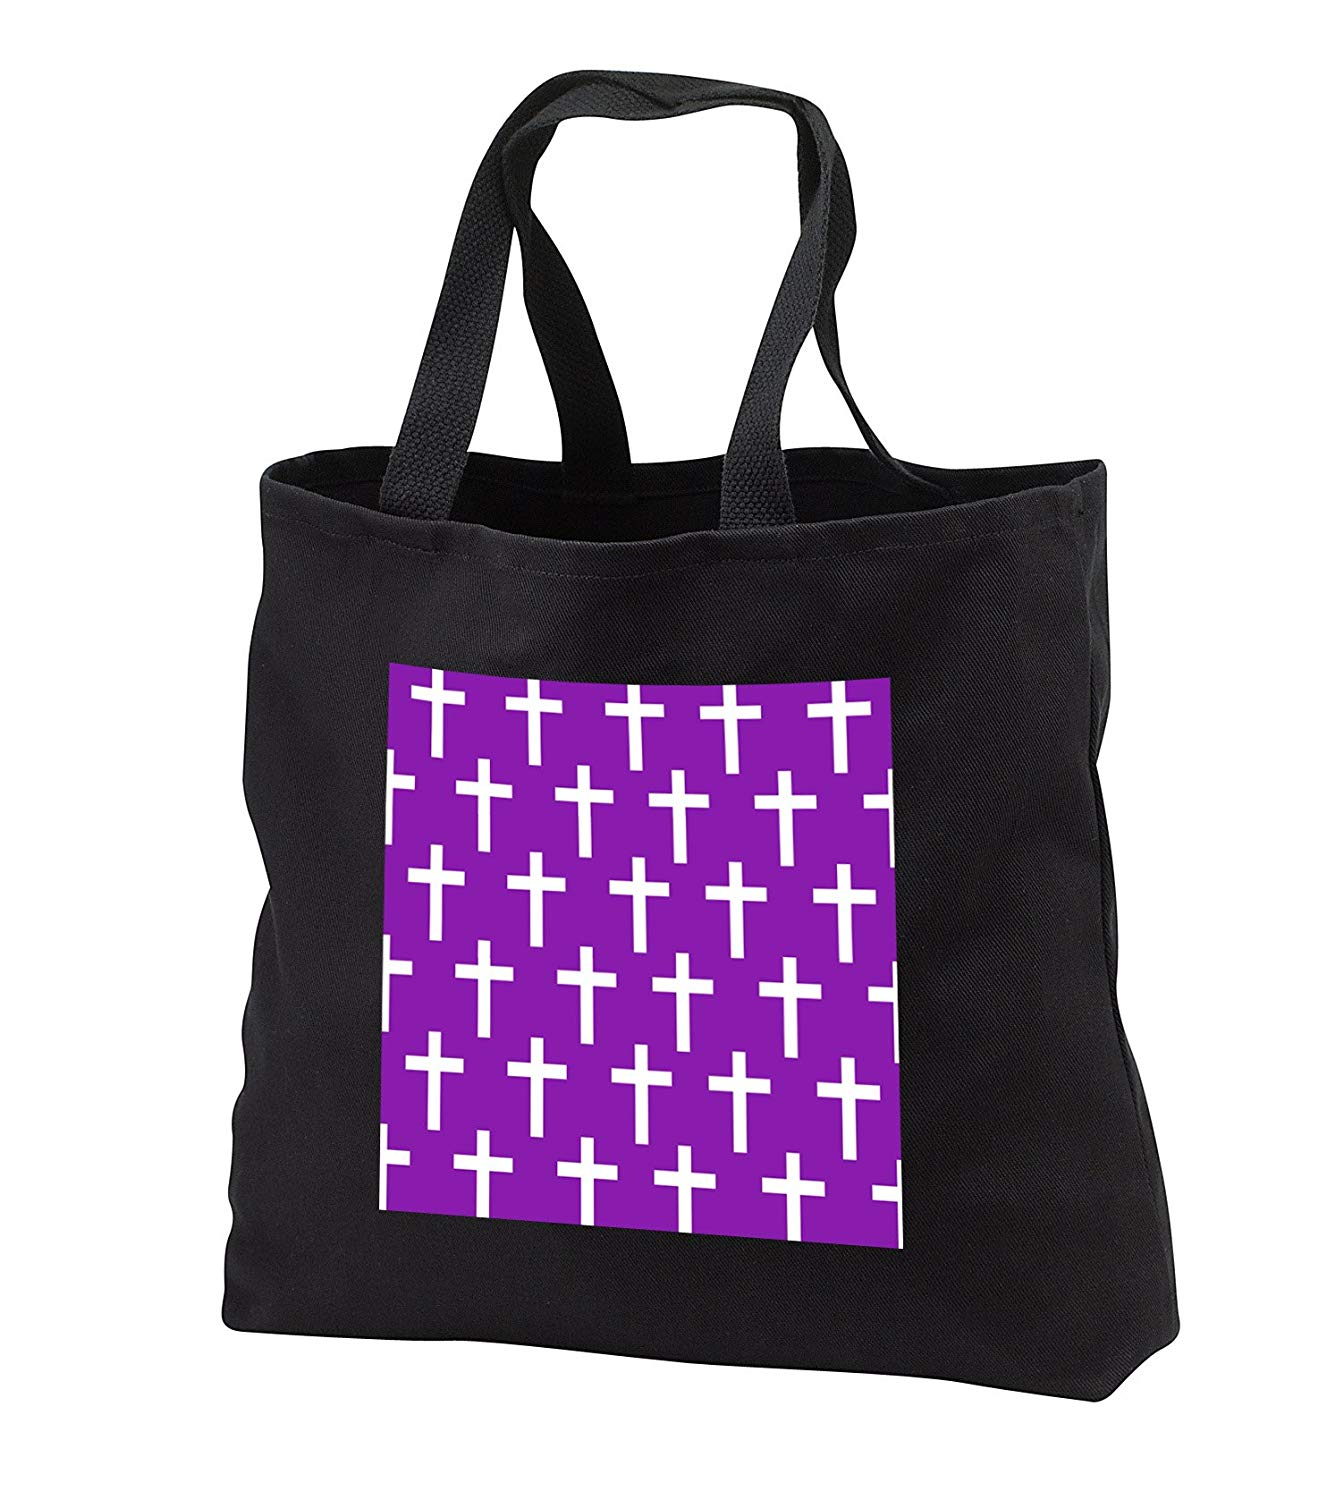 tb_185499 InspirationzStore Christian Designs - Purple Christian Cross pattern with white religious crucifix crosses - Tote Bags